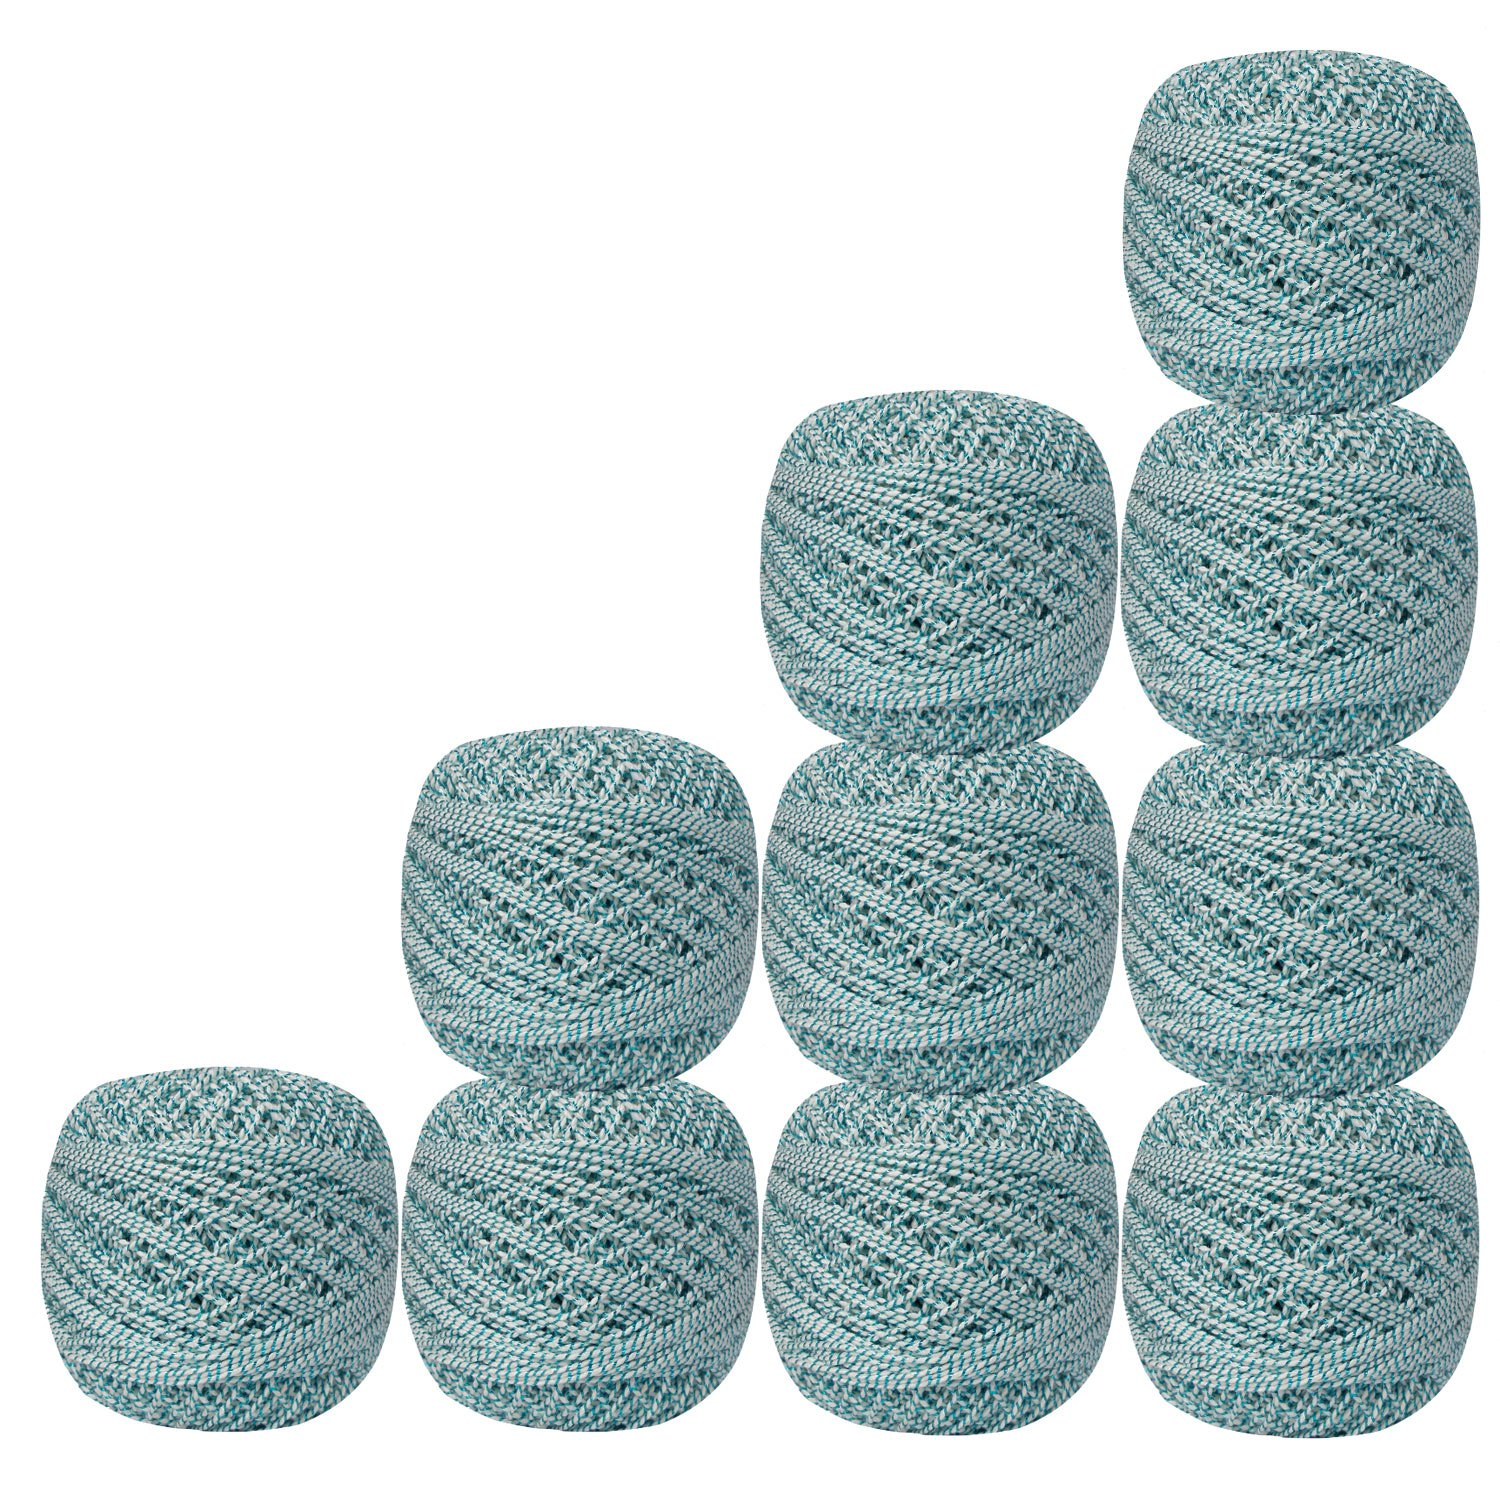 Lot of 10 Pcs White with Metallic Blue Cotton Crochet Thread For Cross Stitch Knitting Tatting Doilies Skeins Lacey Craft Yarn